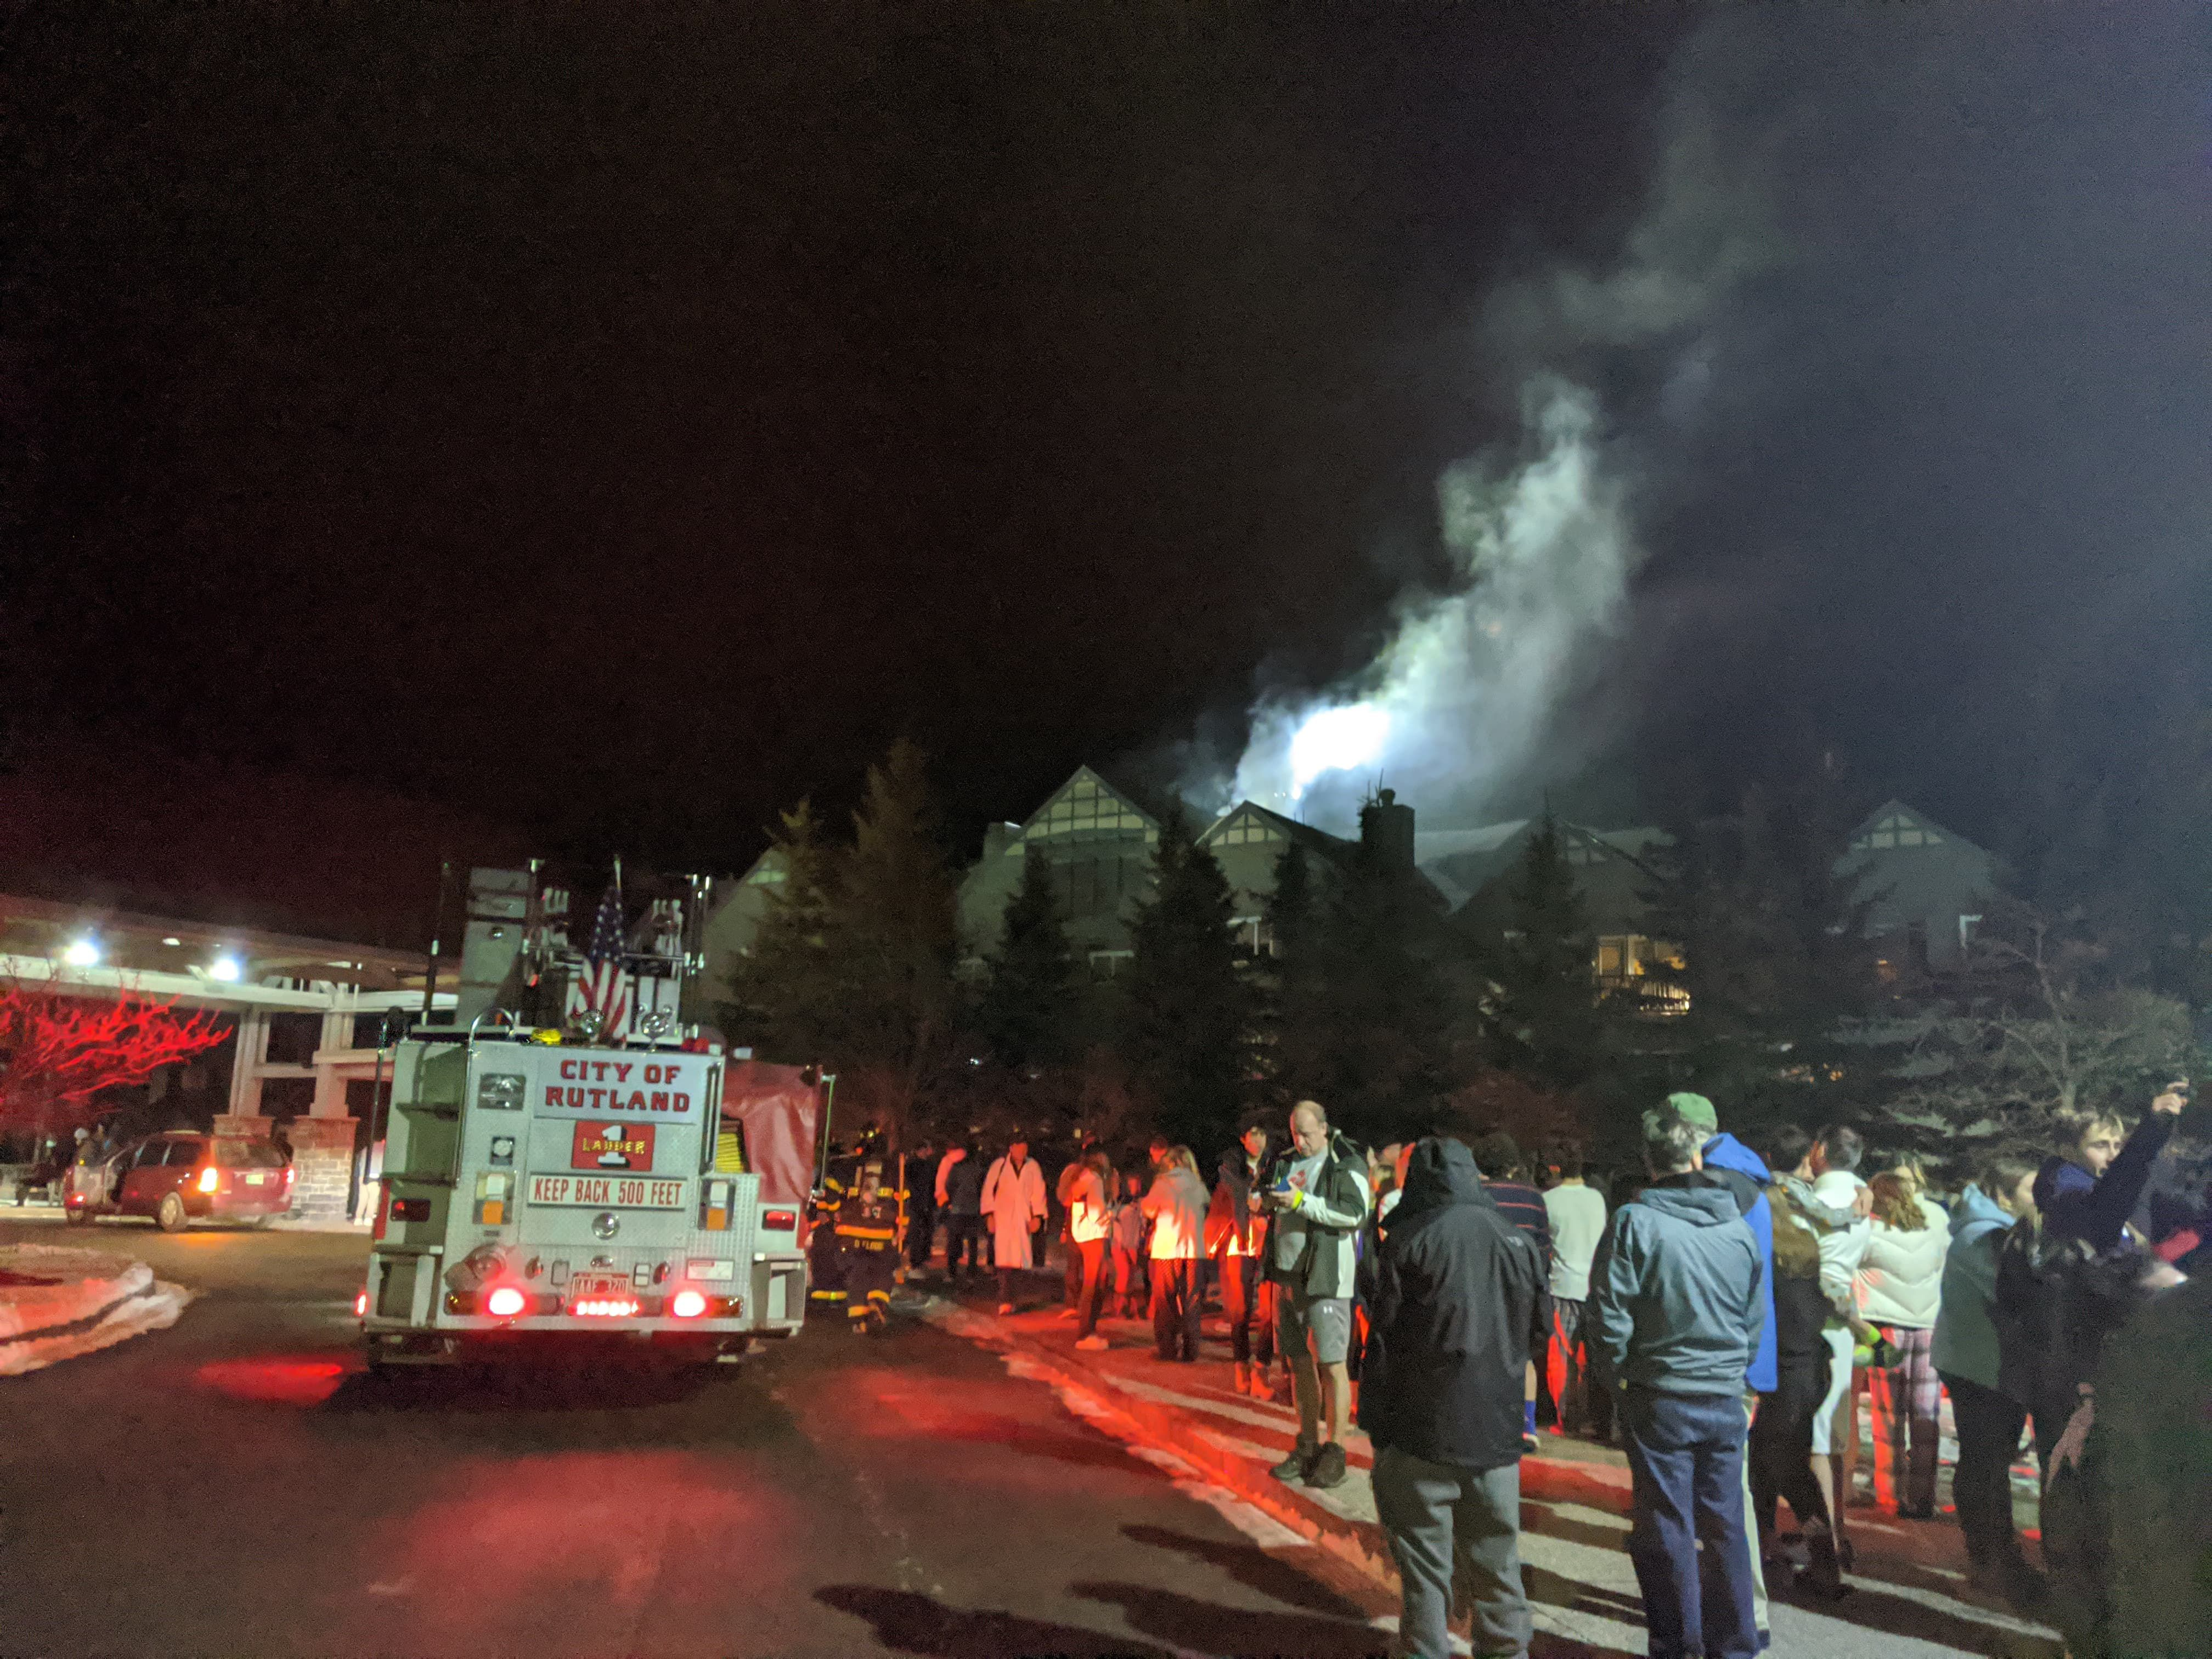 Guests Return To Rooms After Killington Grand Hotel Fire